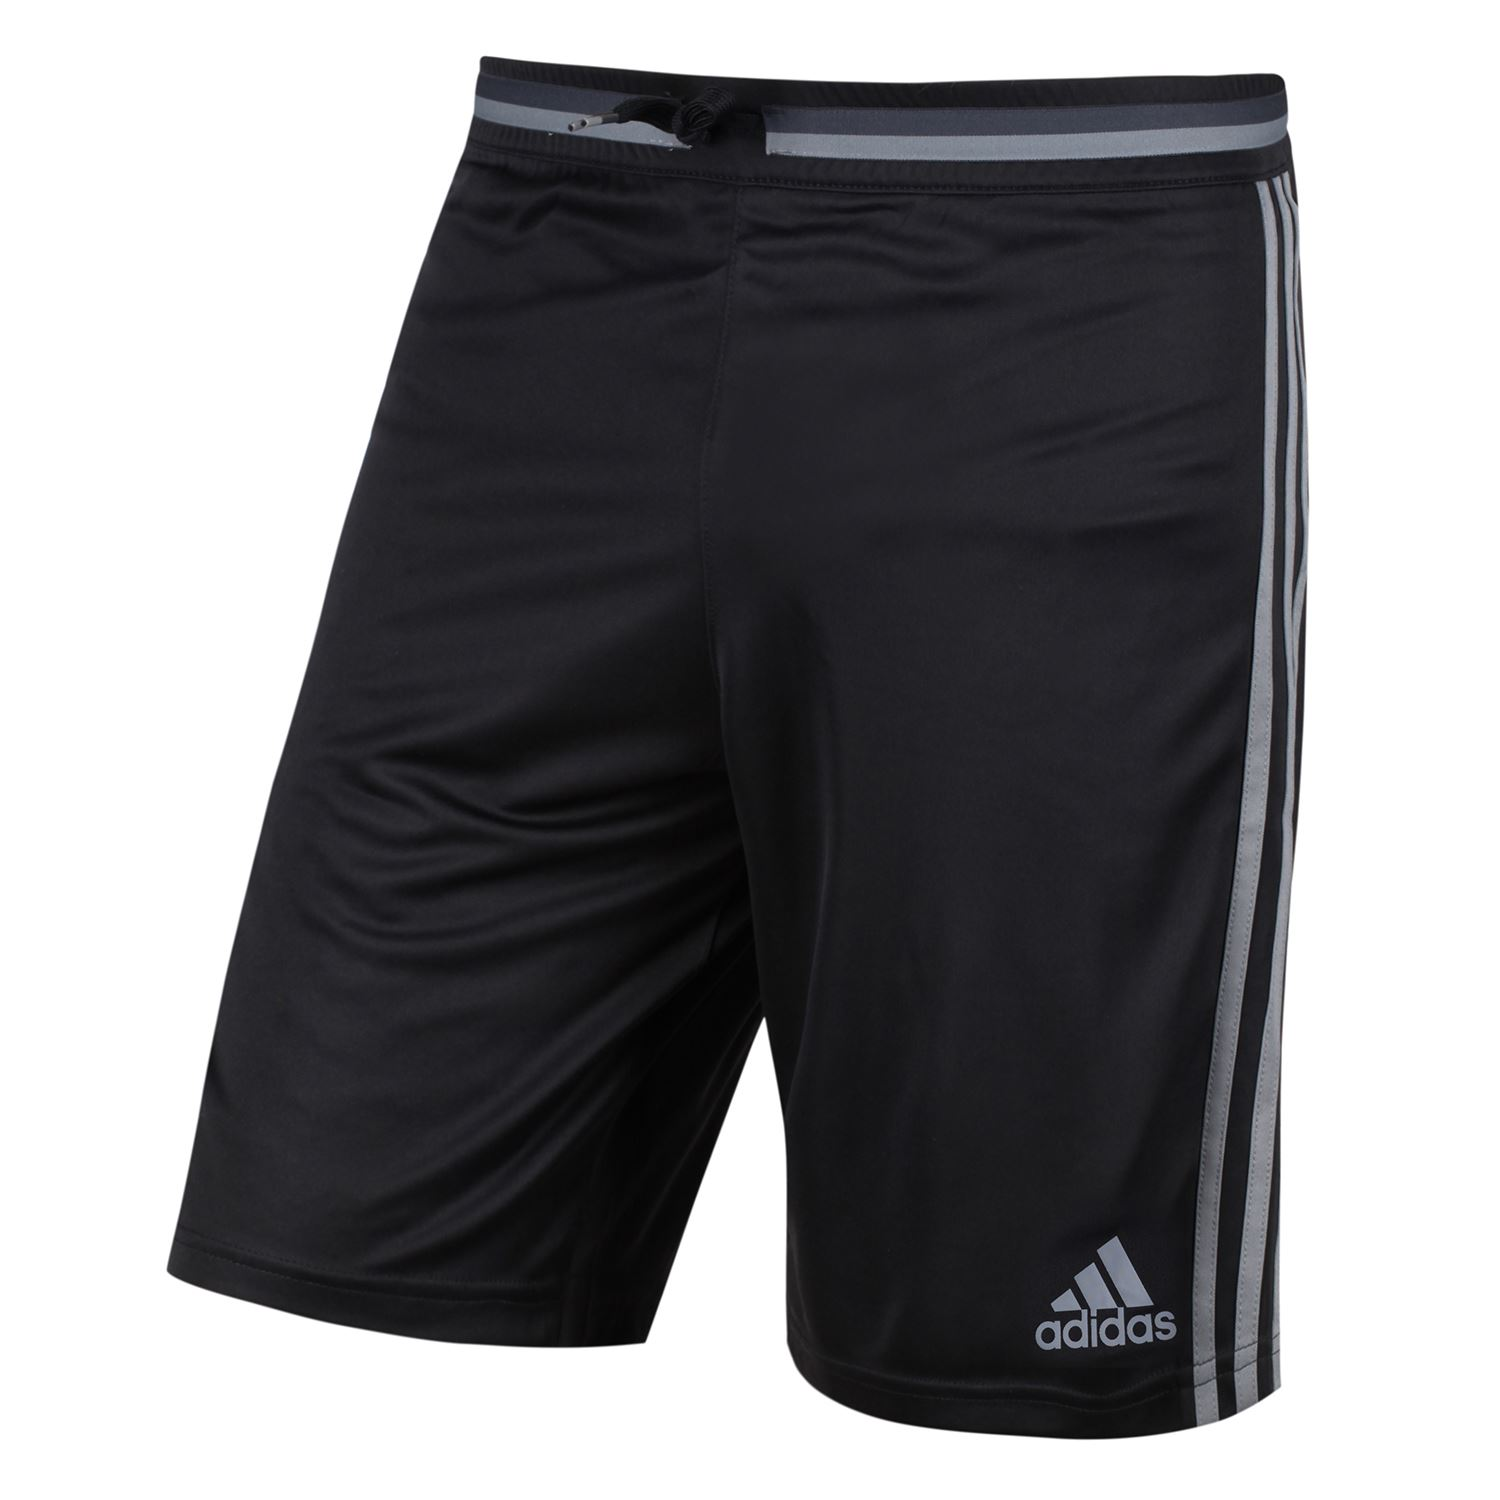 adidas DENMARK NATIONAL TEAM TRAINING SHORTS BLACK GREY FOOTBALL SOCCER ADIZERO